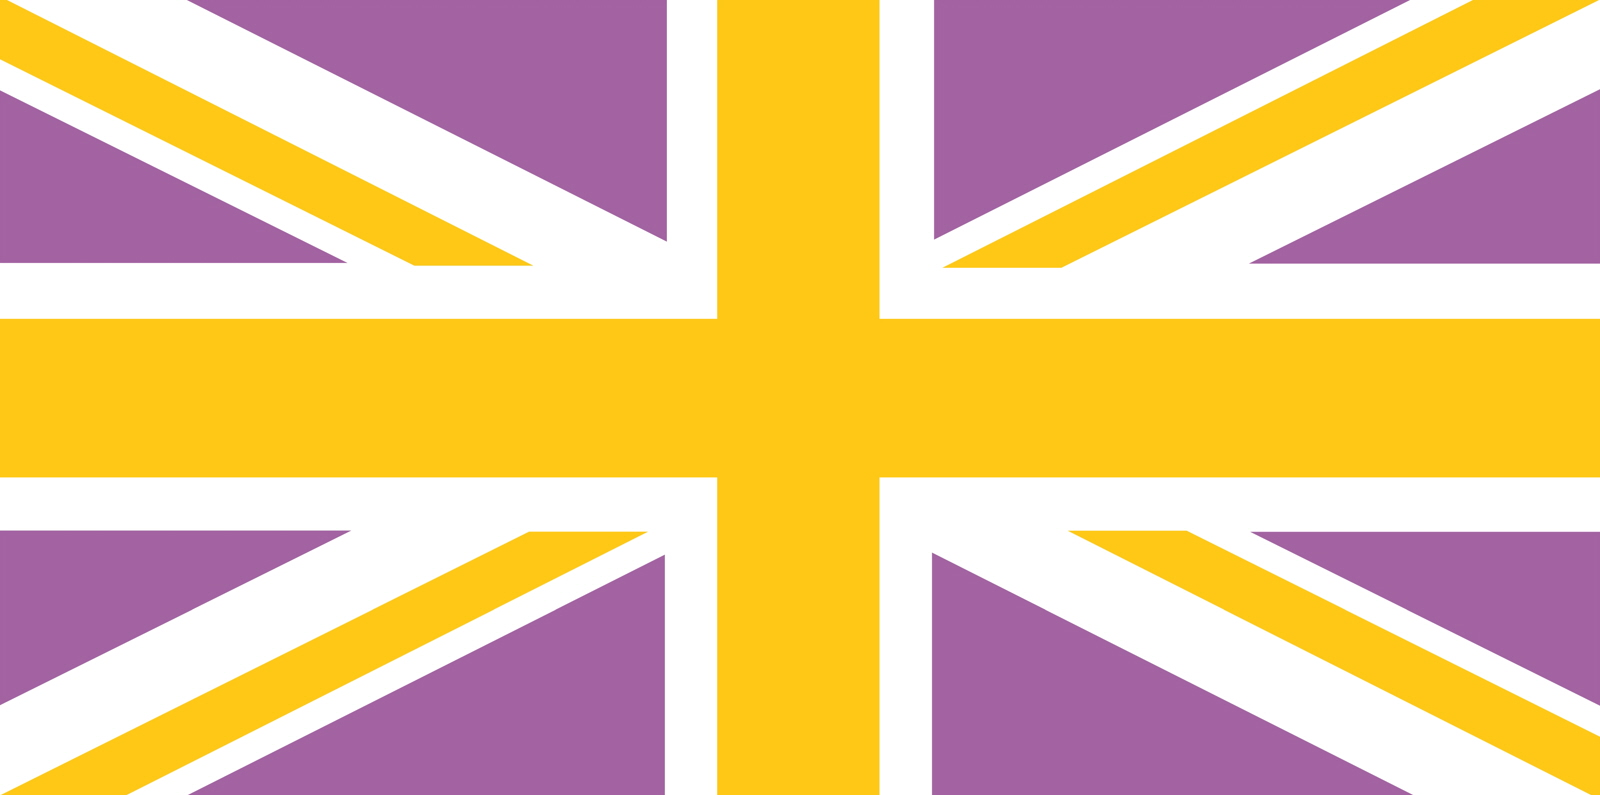 Free Stock Photo 9346 purple yellow union jack | freeimageslive